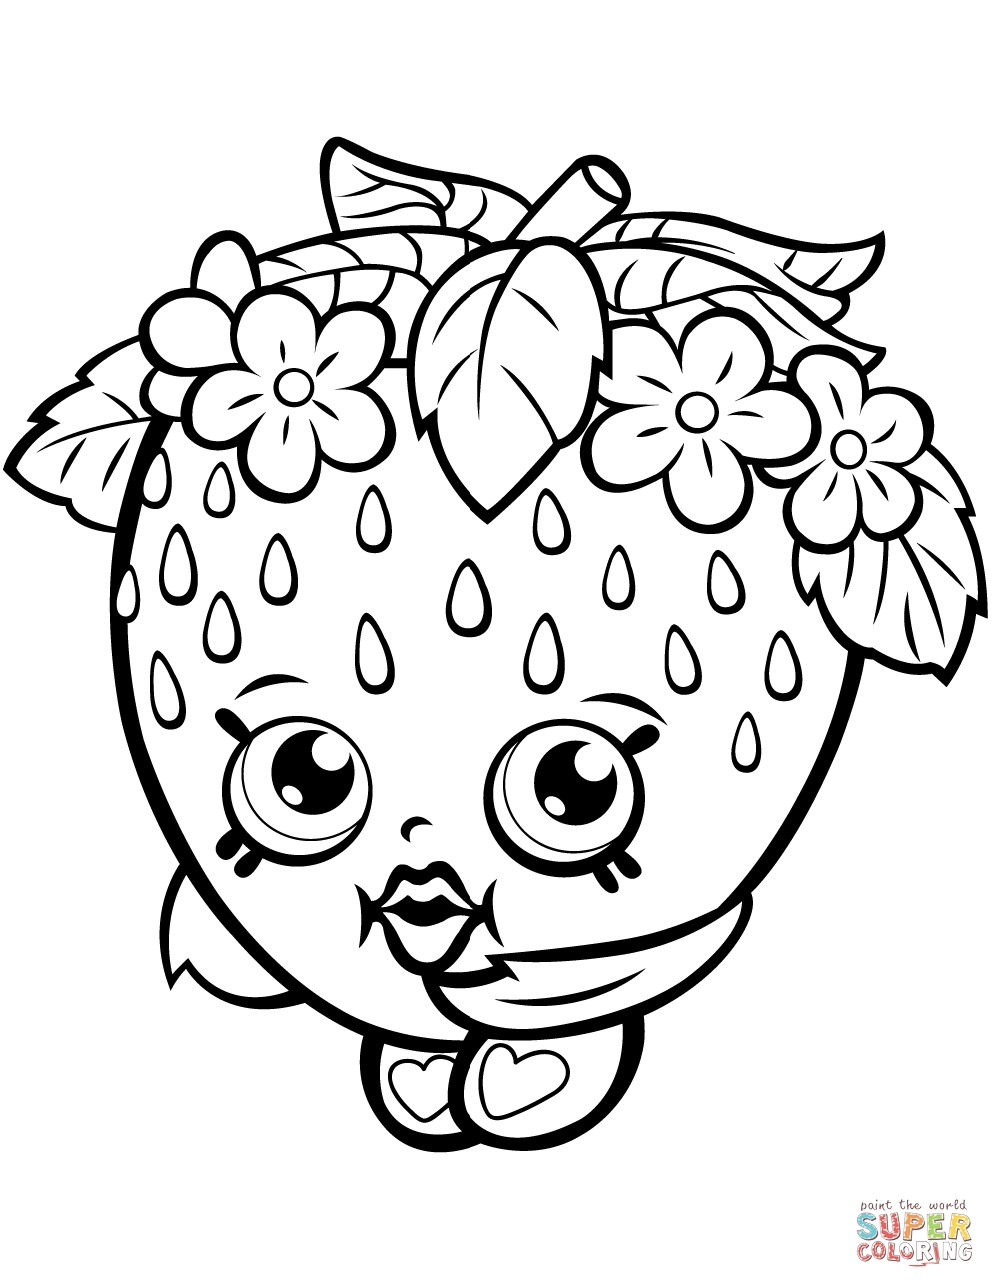 shopkin coloring pages - strawberry kiss shopkin